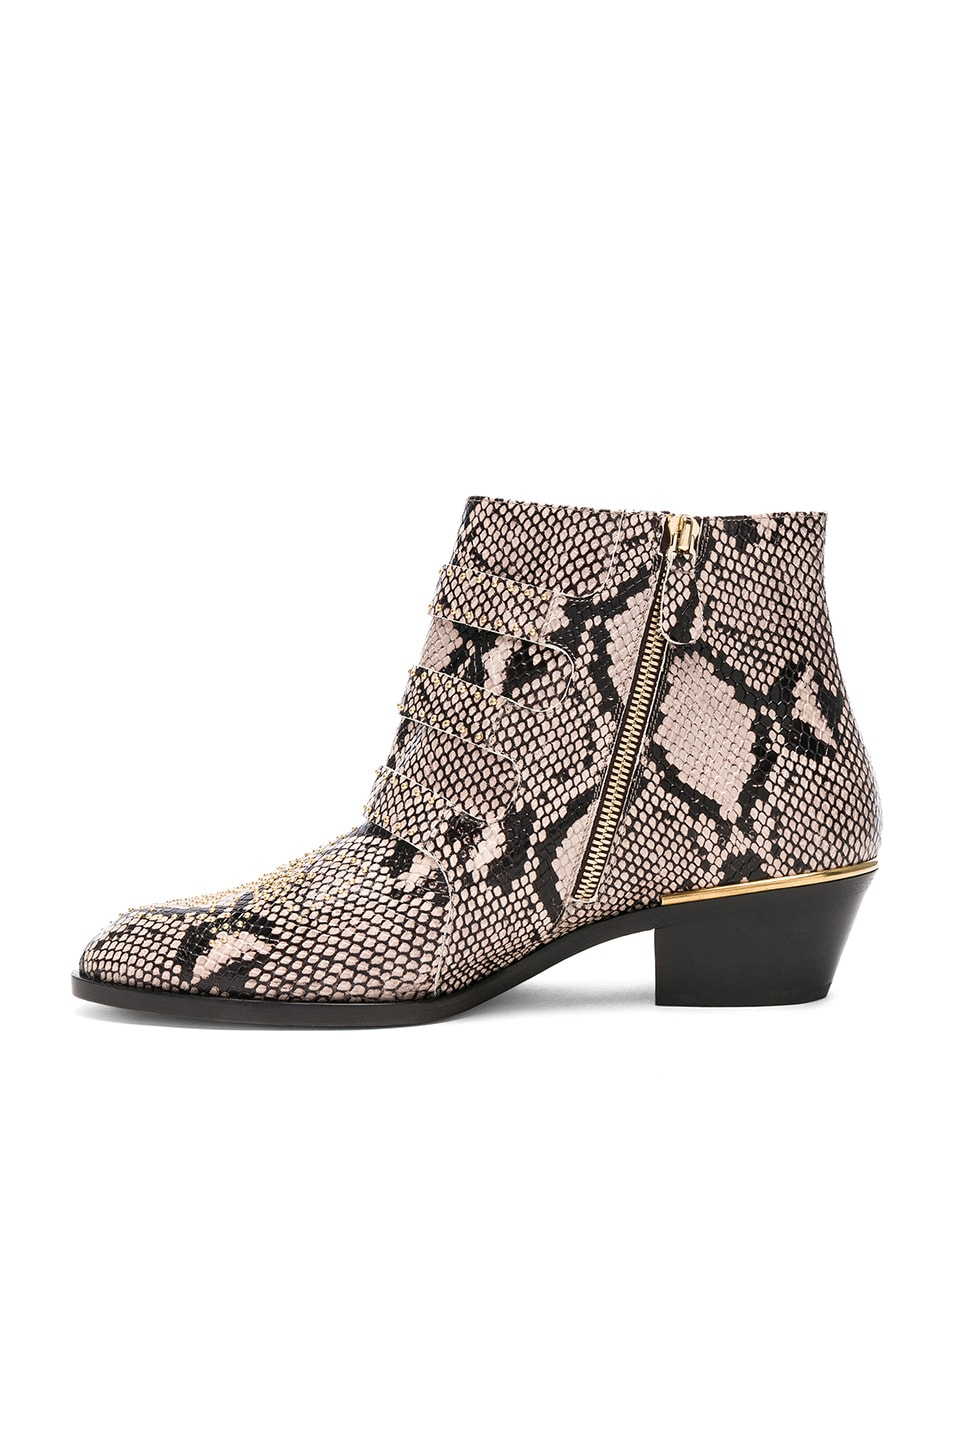 Image 5 of Chloe Susanna Python Print Leather Studded Ankle Boots in Eternal Grey